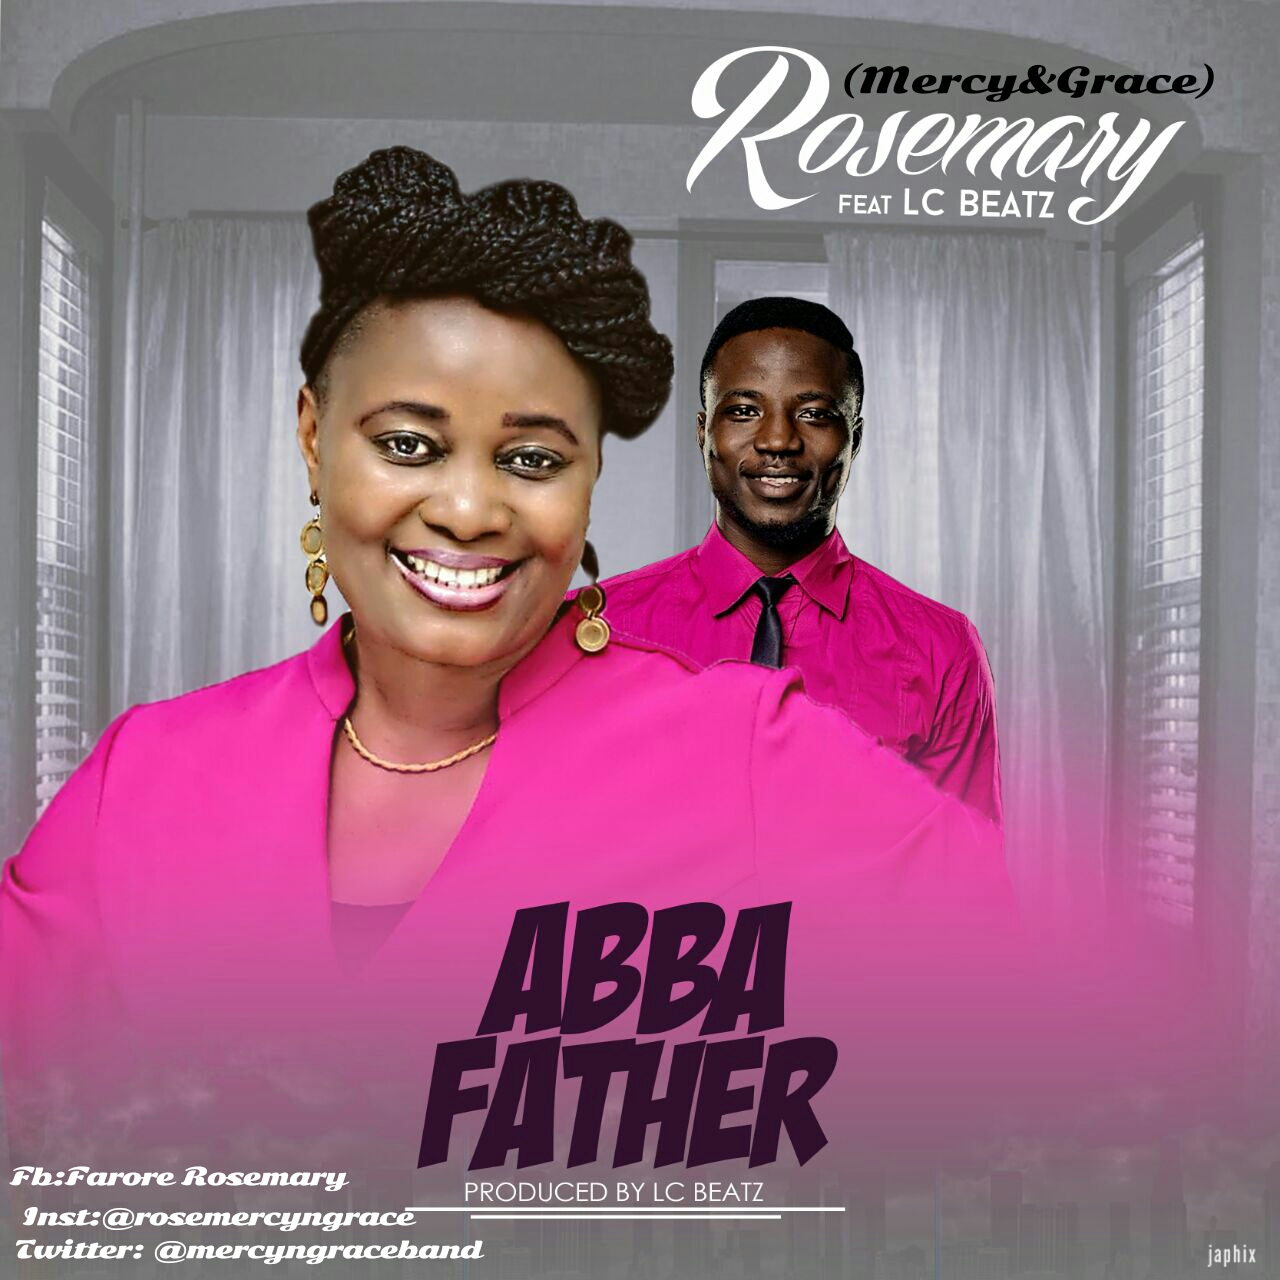 Rosemary - Abba Father